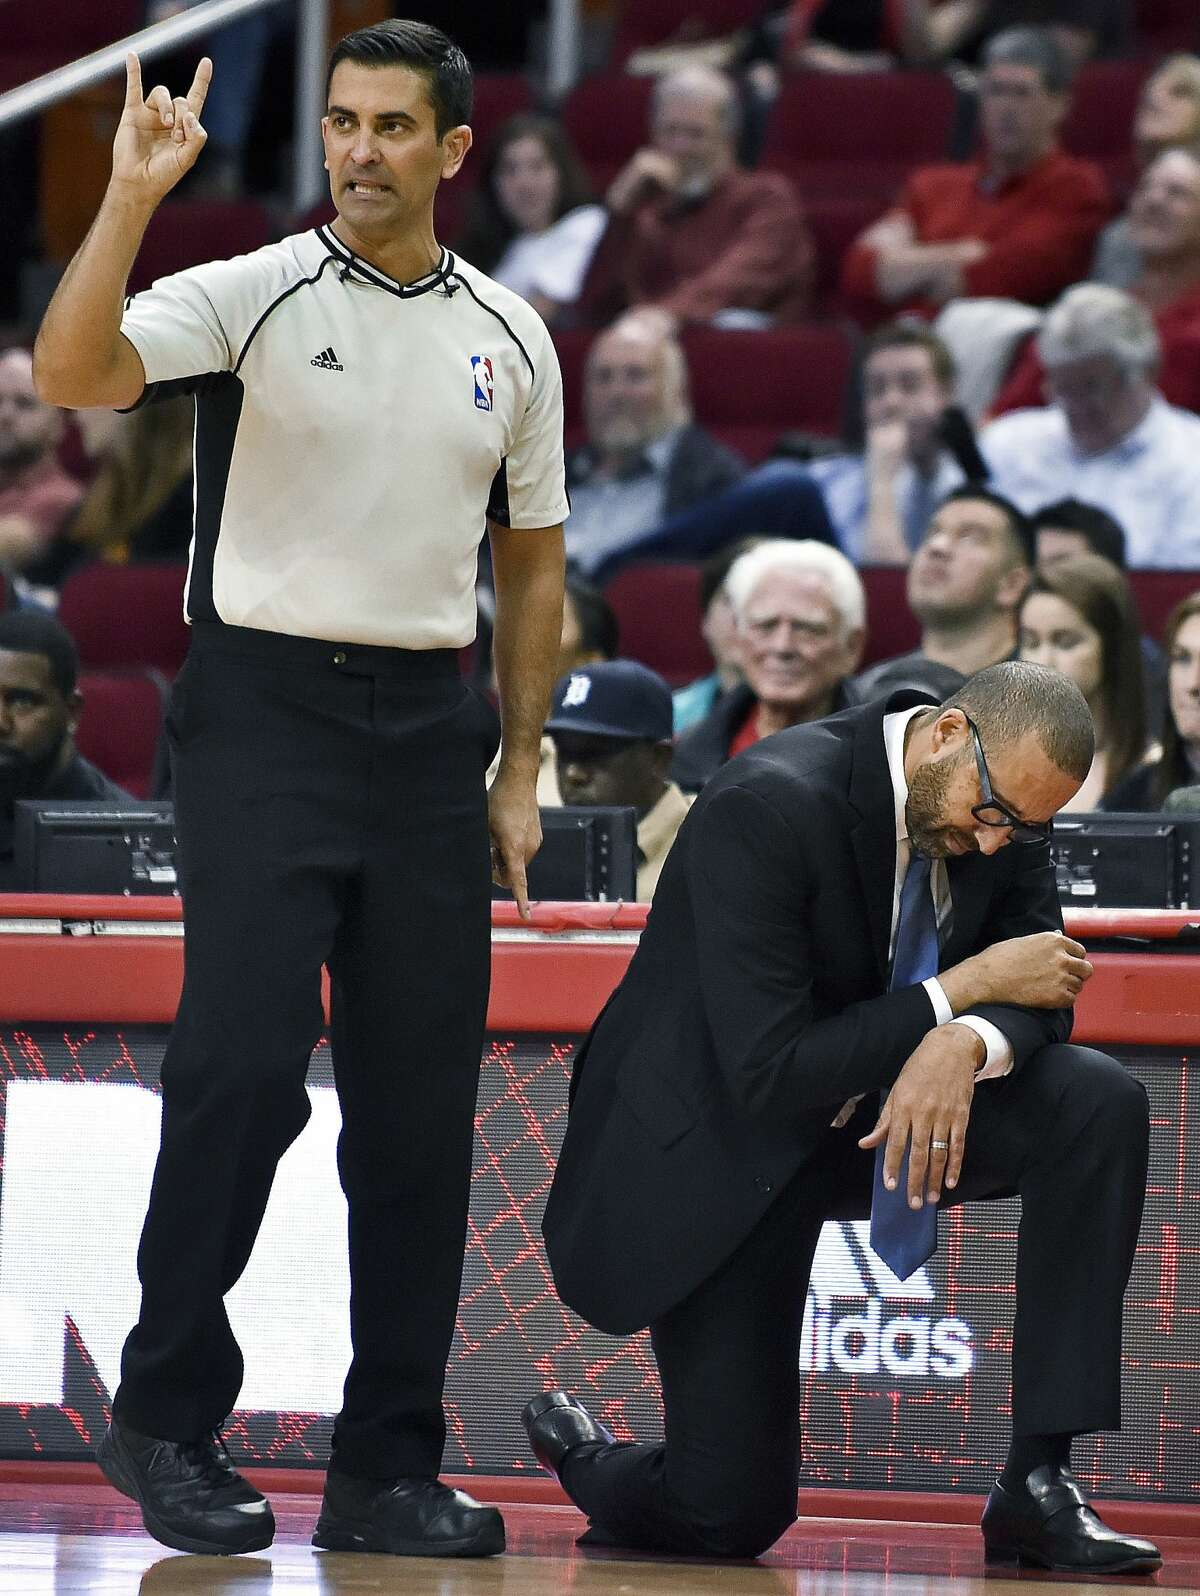 Memphis Grizzlies coach David Fizdale, right, reacts after guard Toney Douglas committed his fifth foul, during the second half of an NBA basketball game against the Houston Rockets, Saturday, March 4, 2017, in Houston. Houston won 123-108. (AP Photo/Eric Christian Smith)